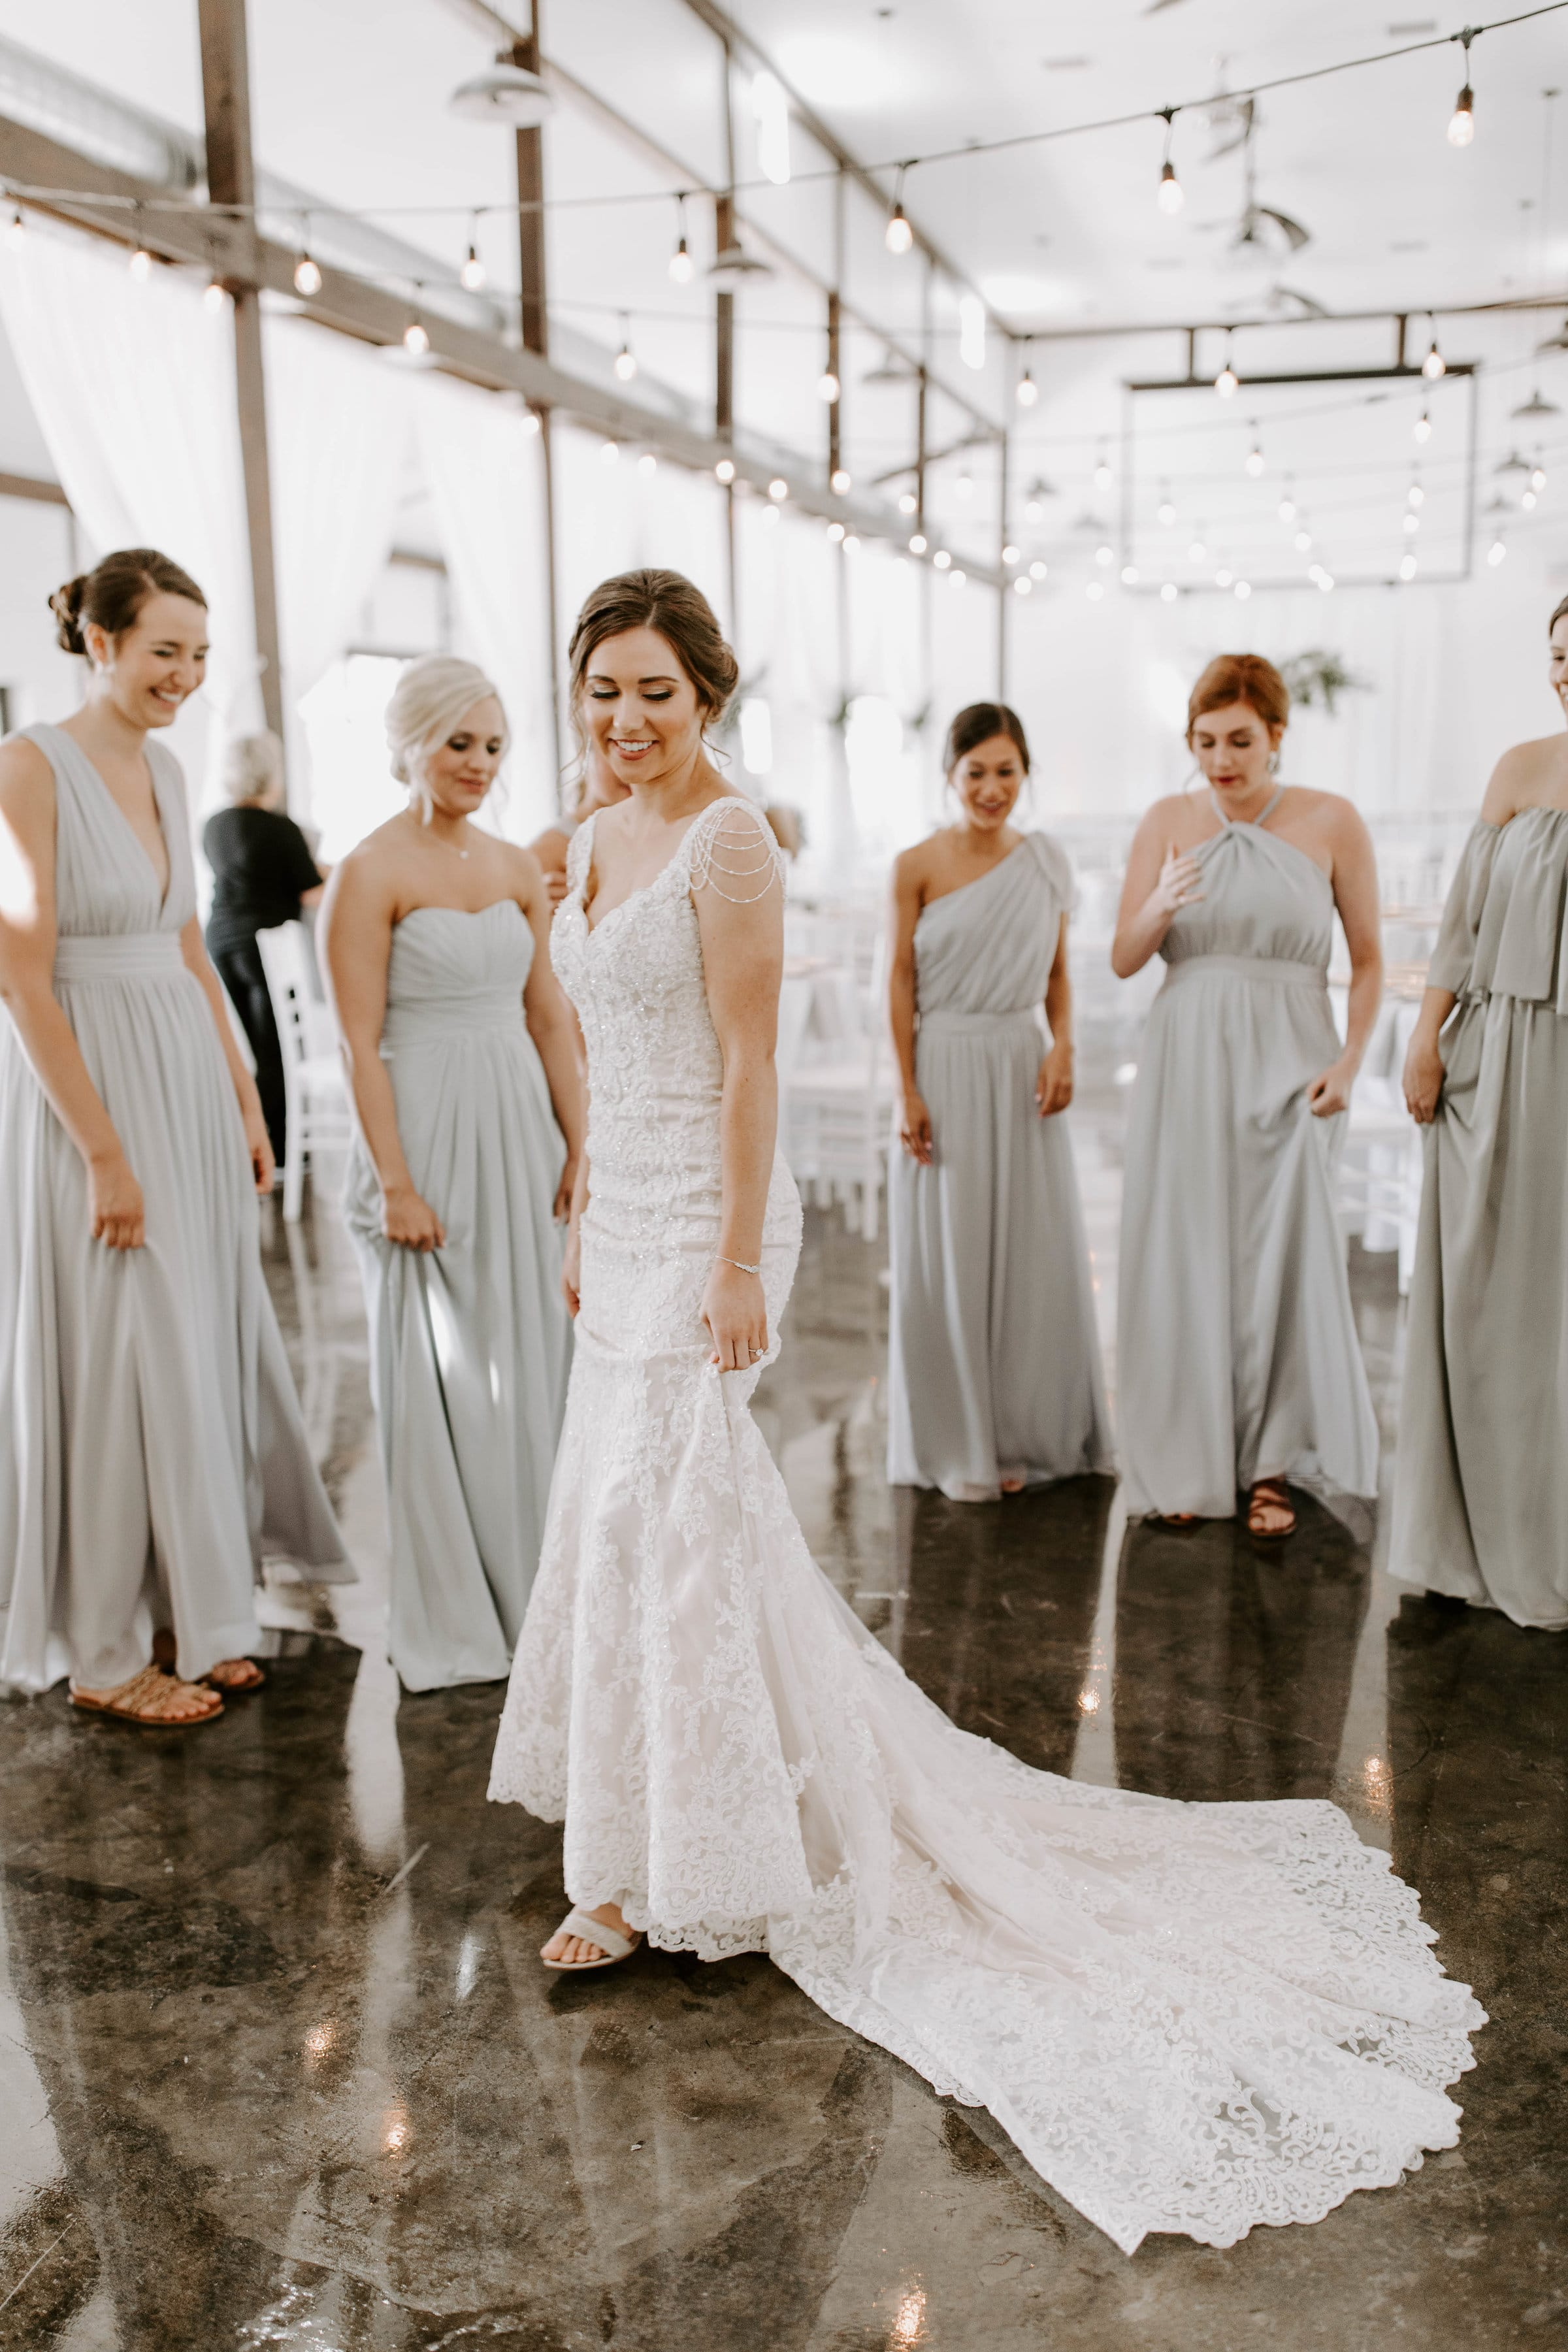 bridesmaids first look 4-min.jpg